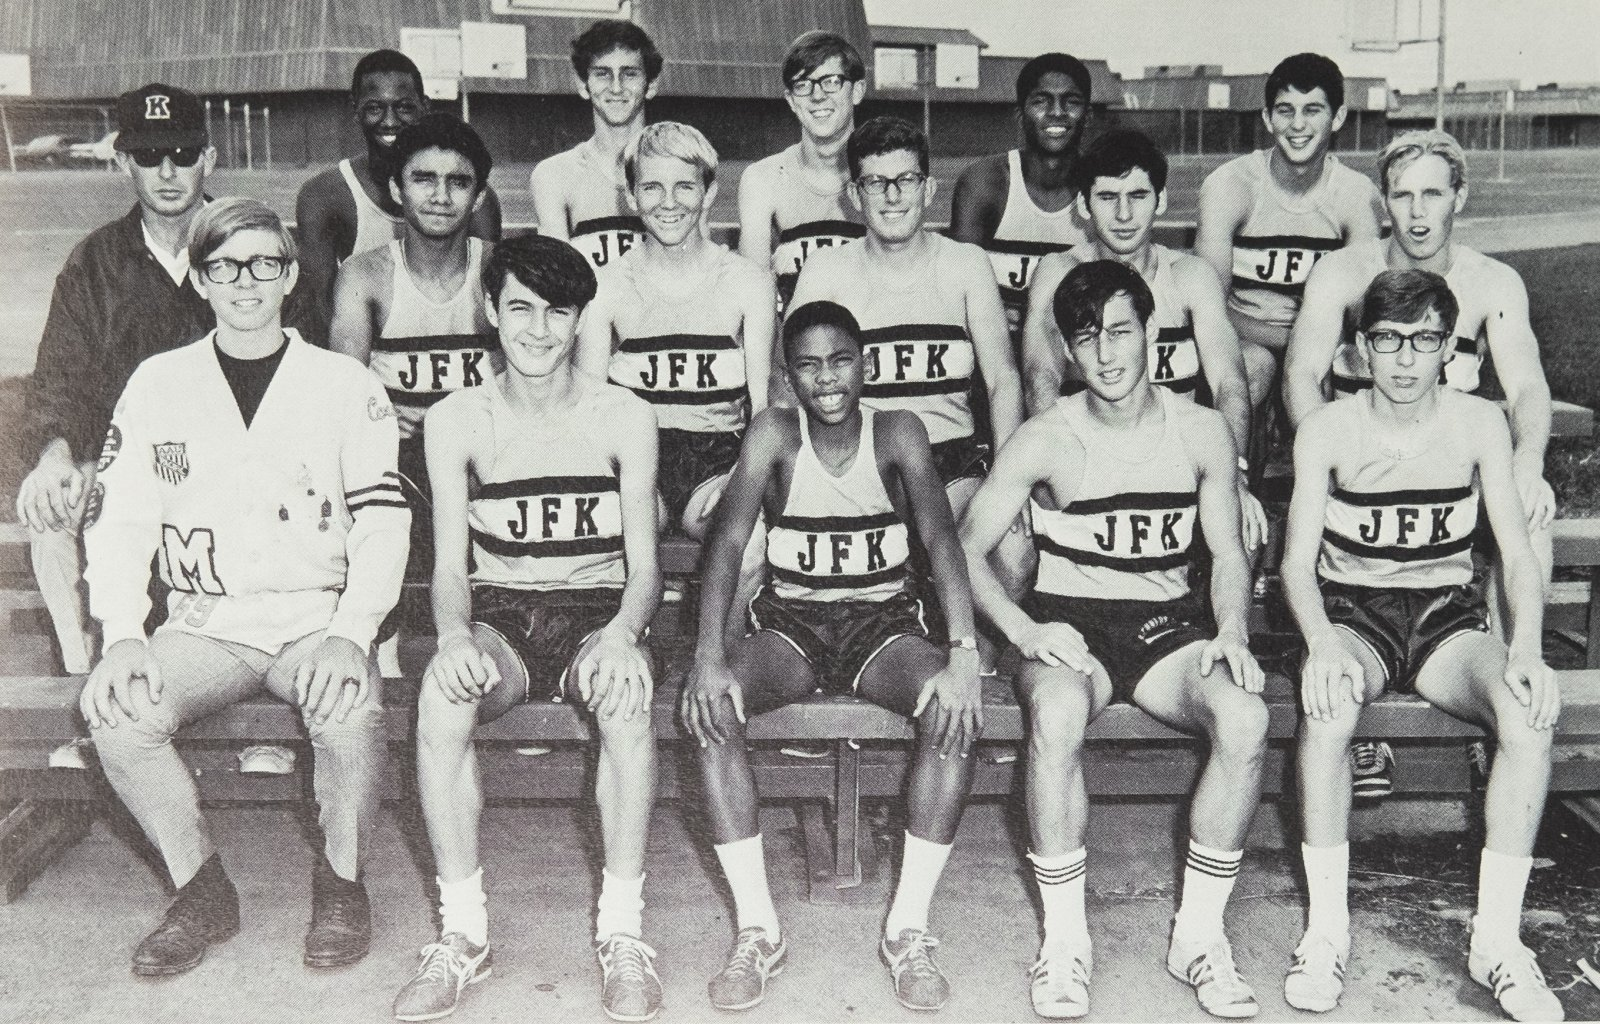 West, front row center, with the rest of the school's cross country team in 1969 (Photo courtesy of John F. Kennedy High School)